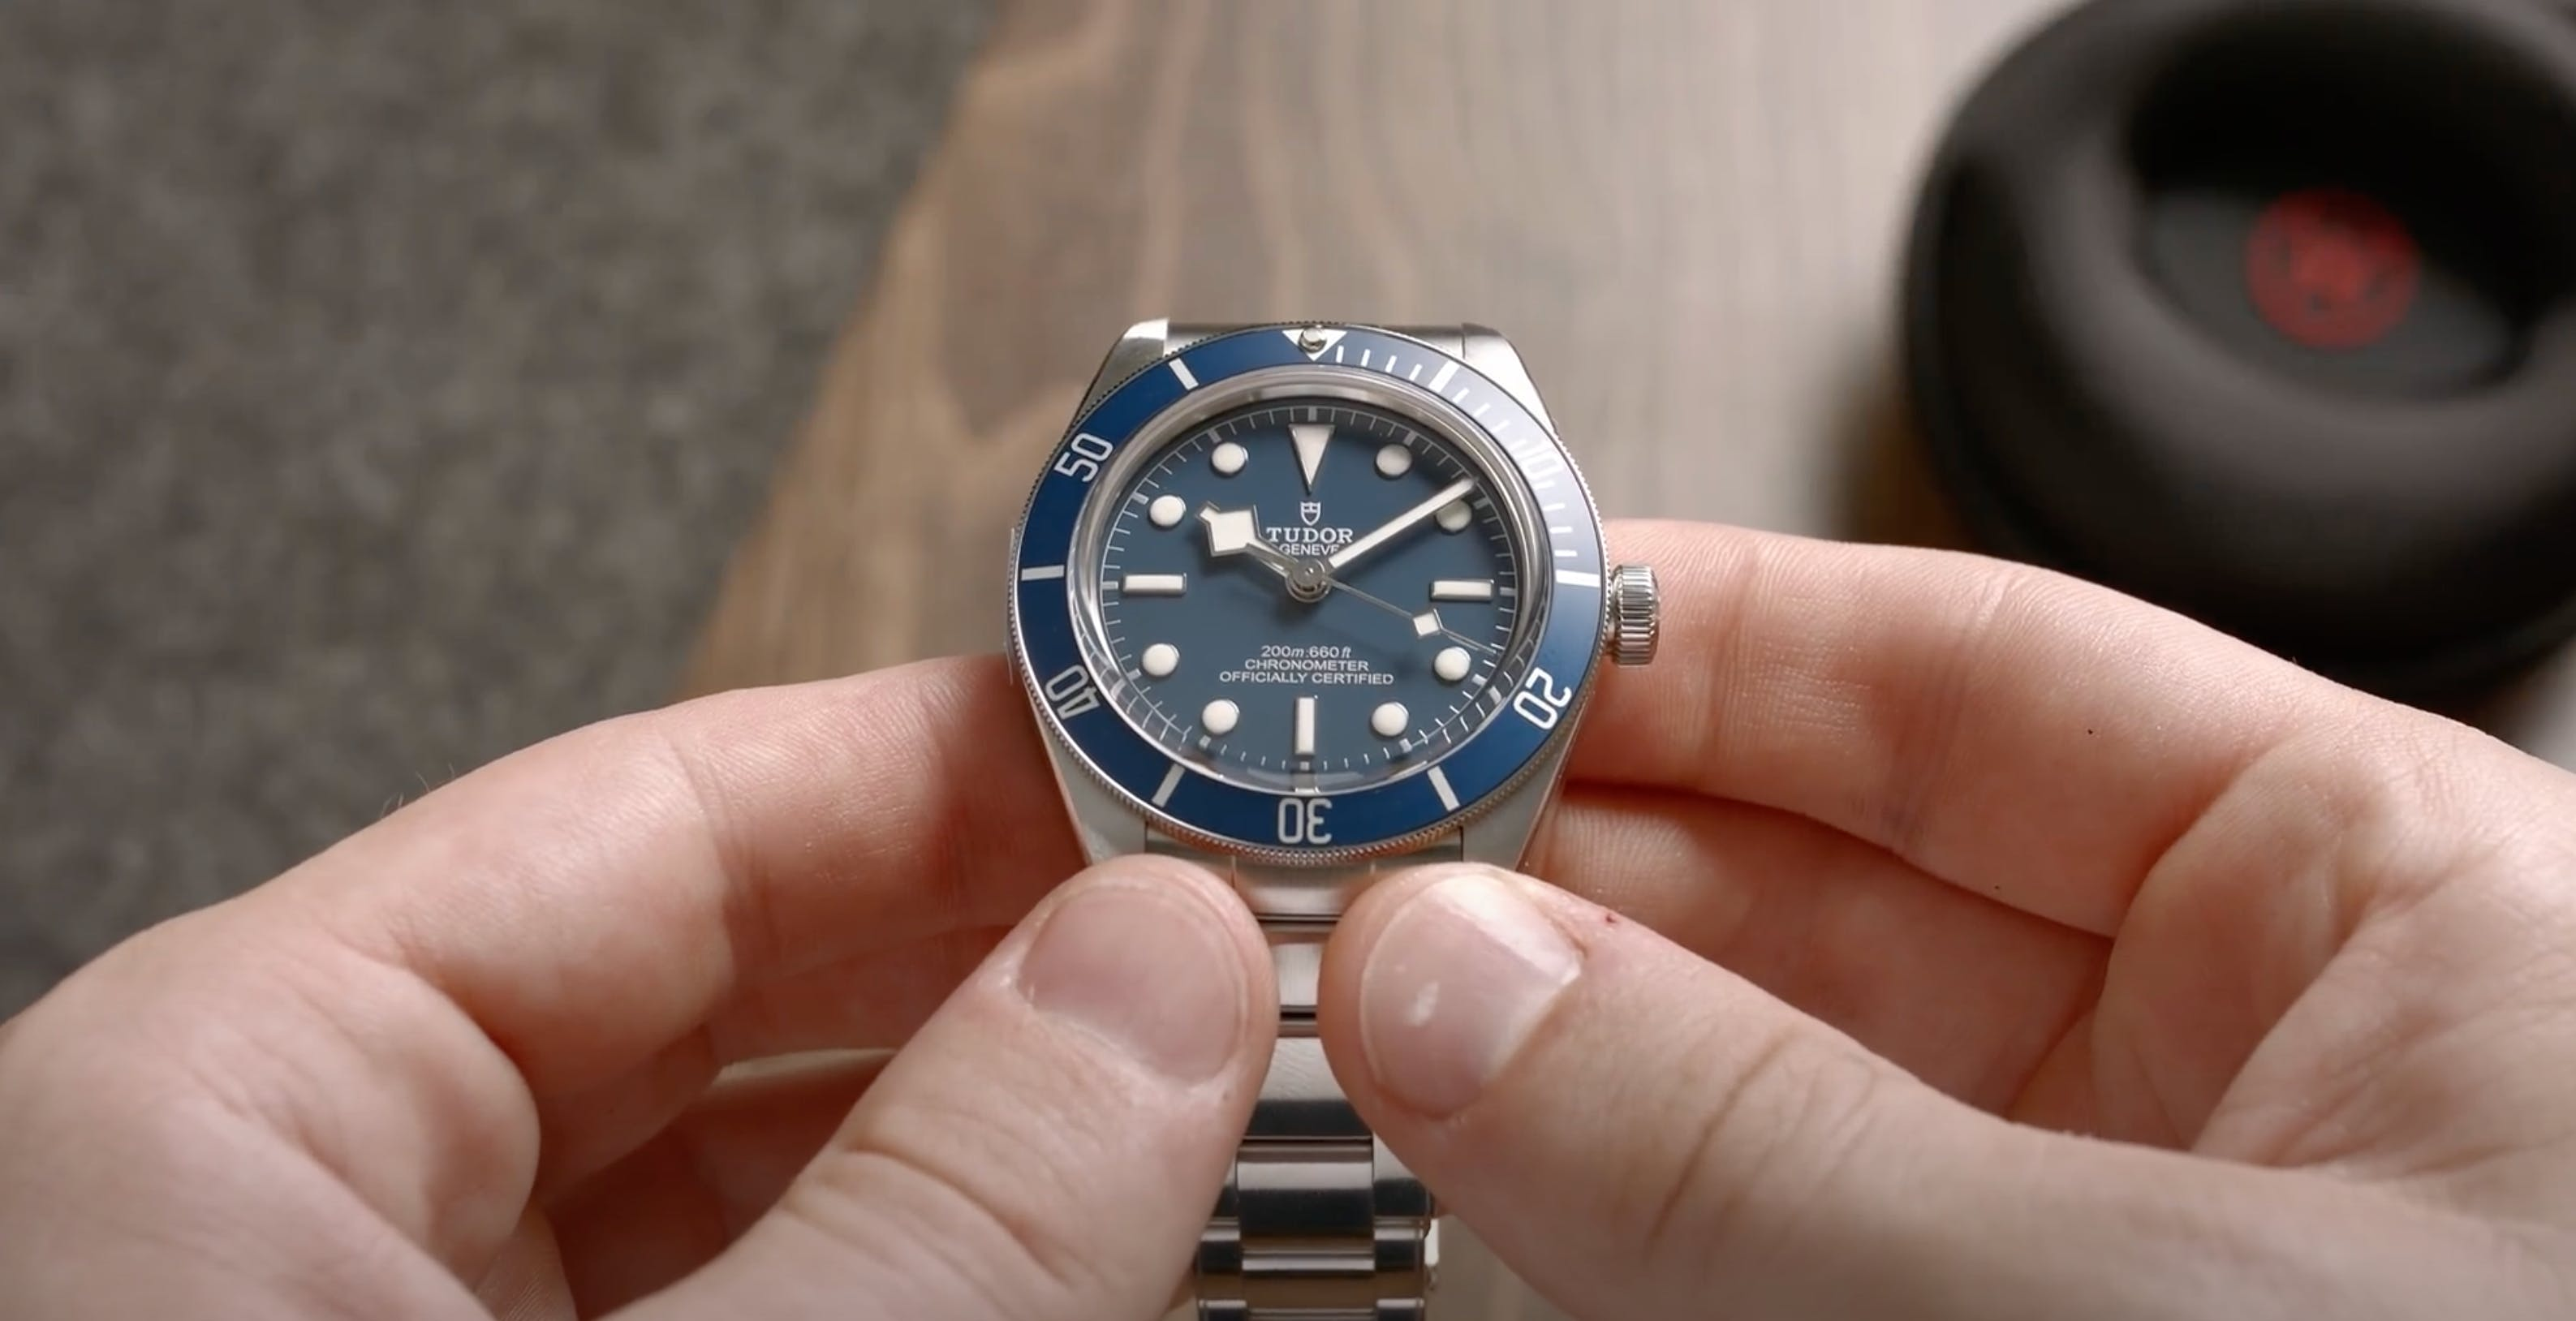 Tudor Black Bay 58 Navy, Image: WatchVice